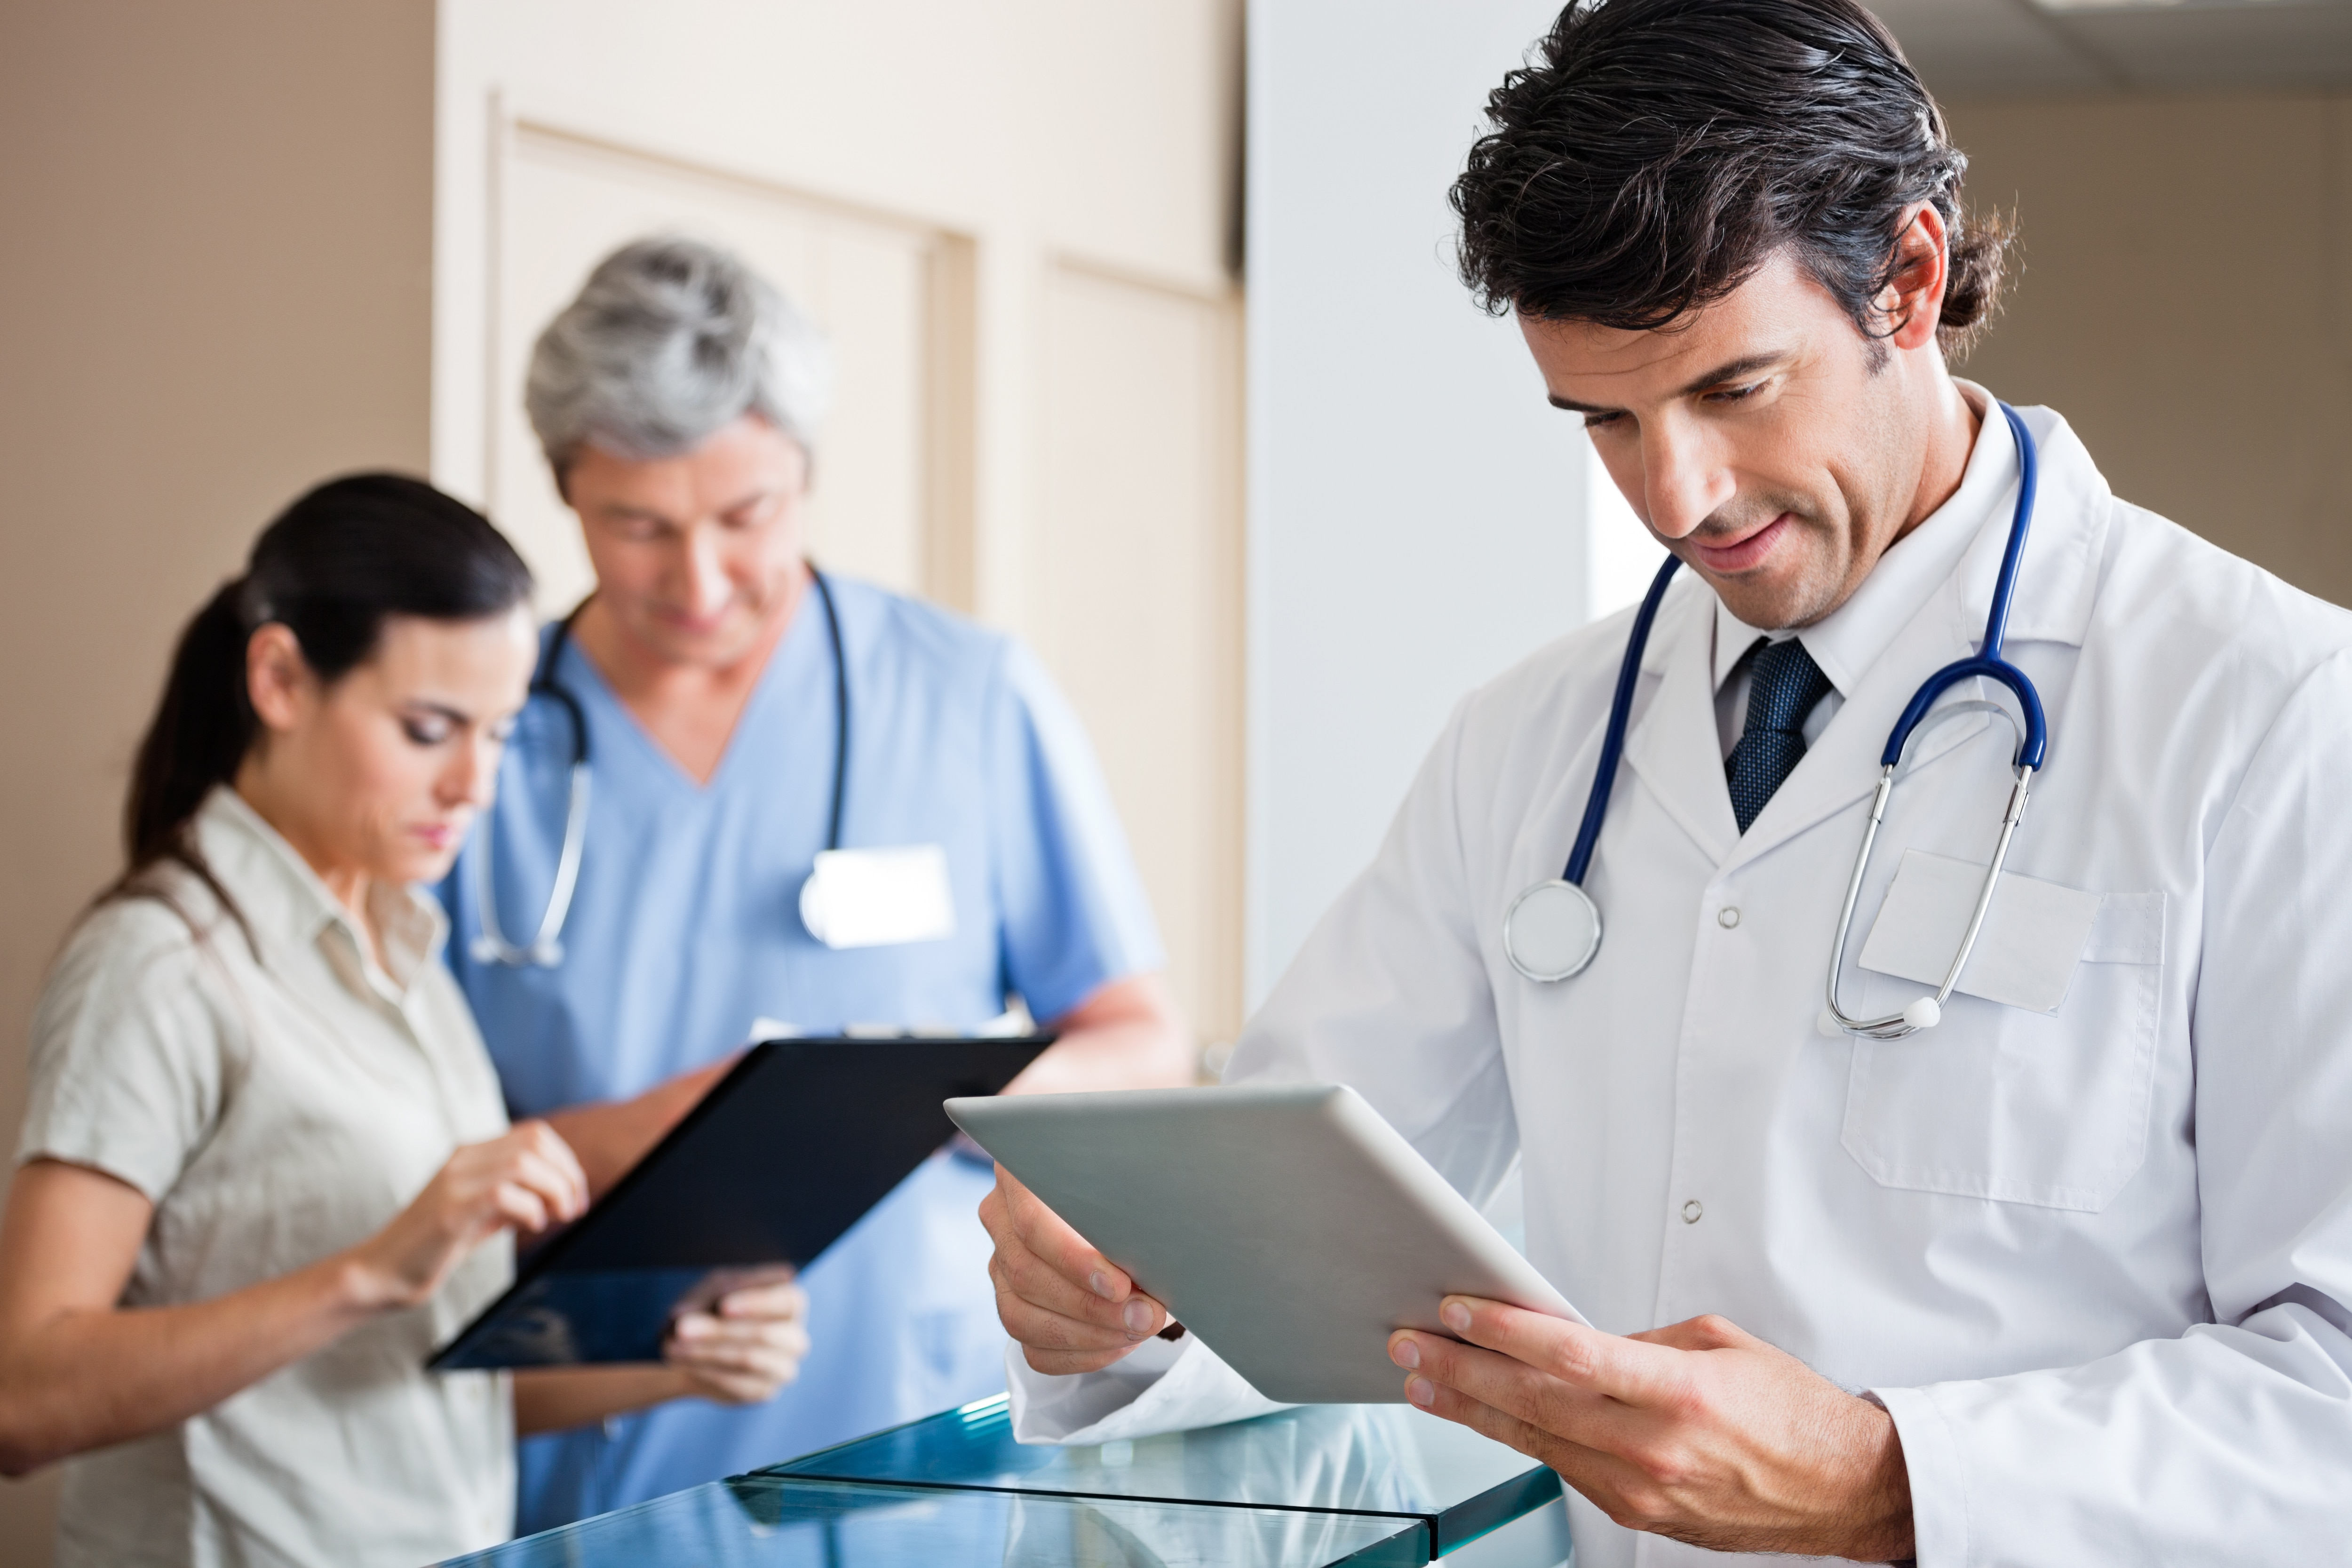 Doctor and surgical staff looking at tablets